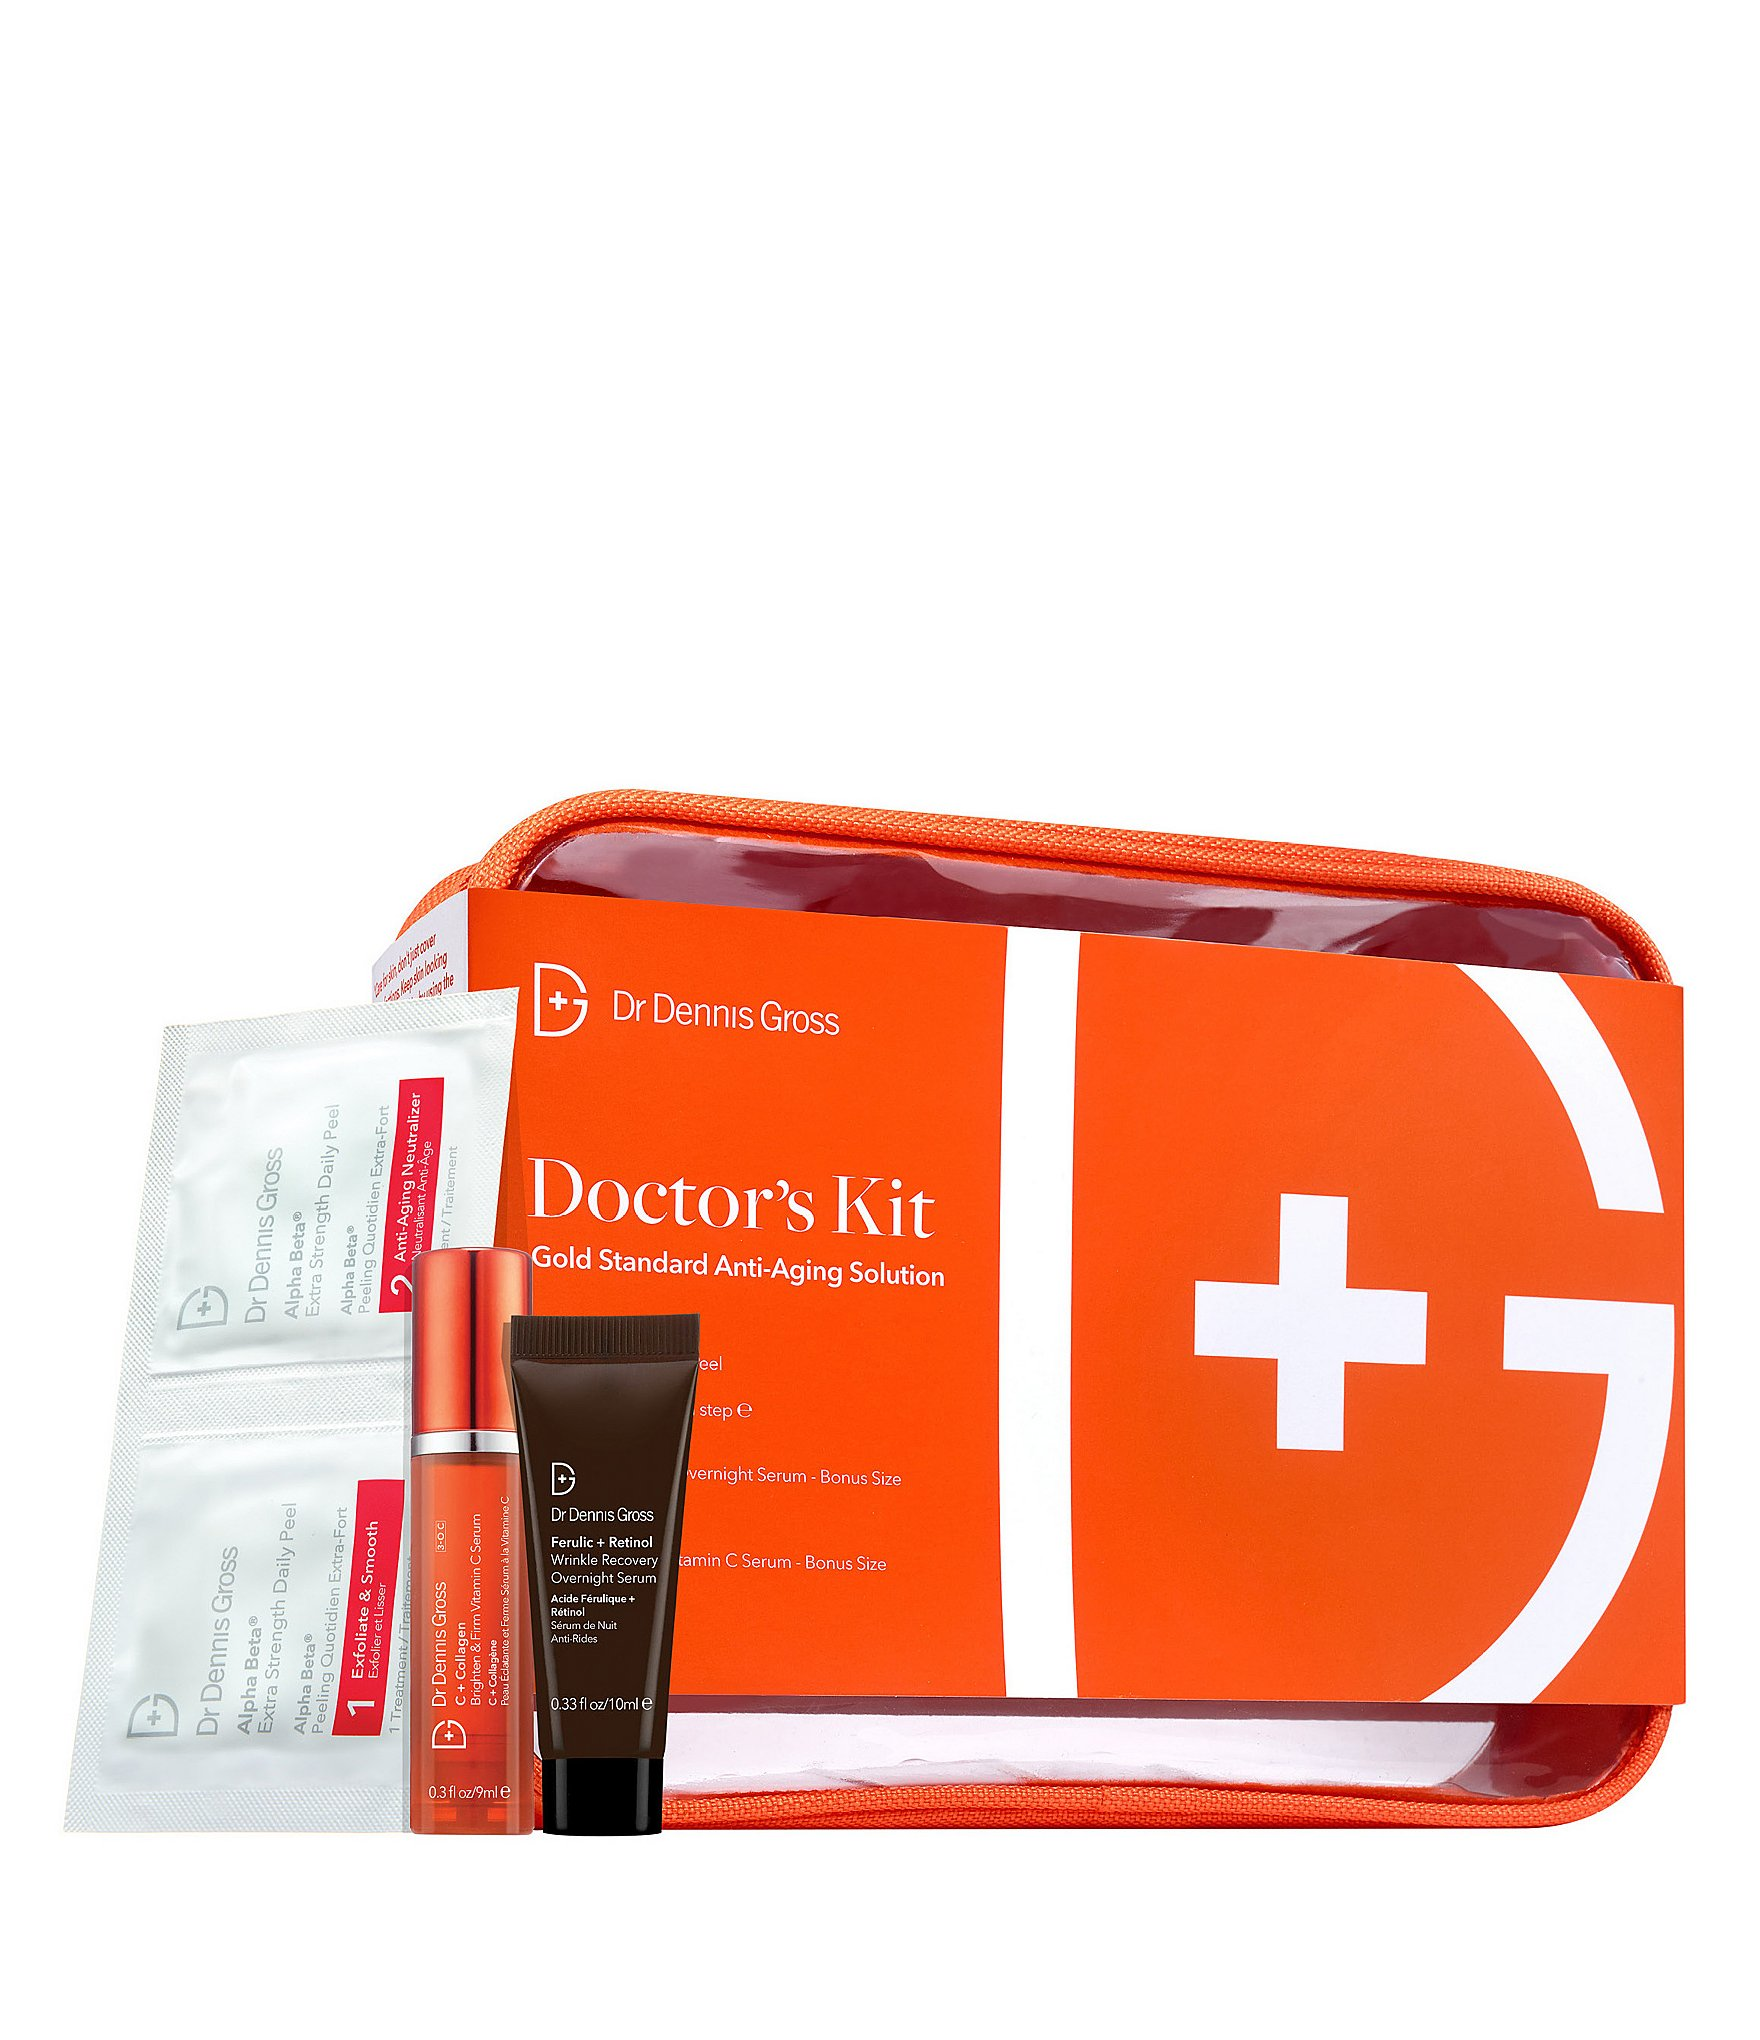 Dr Dennis Gross Skincare Doctor S Kit Gold Standard Anti Aging